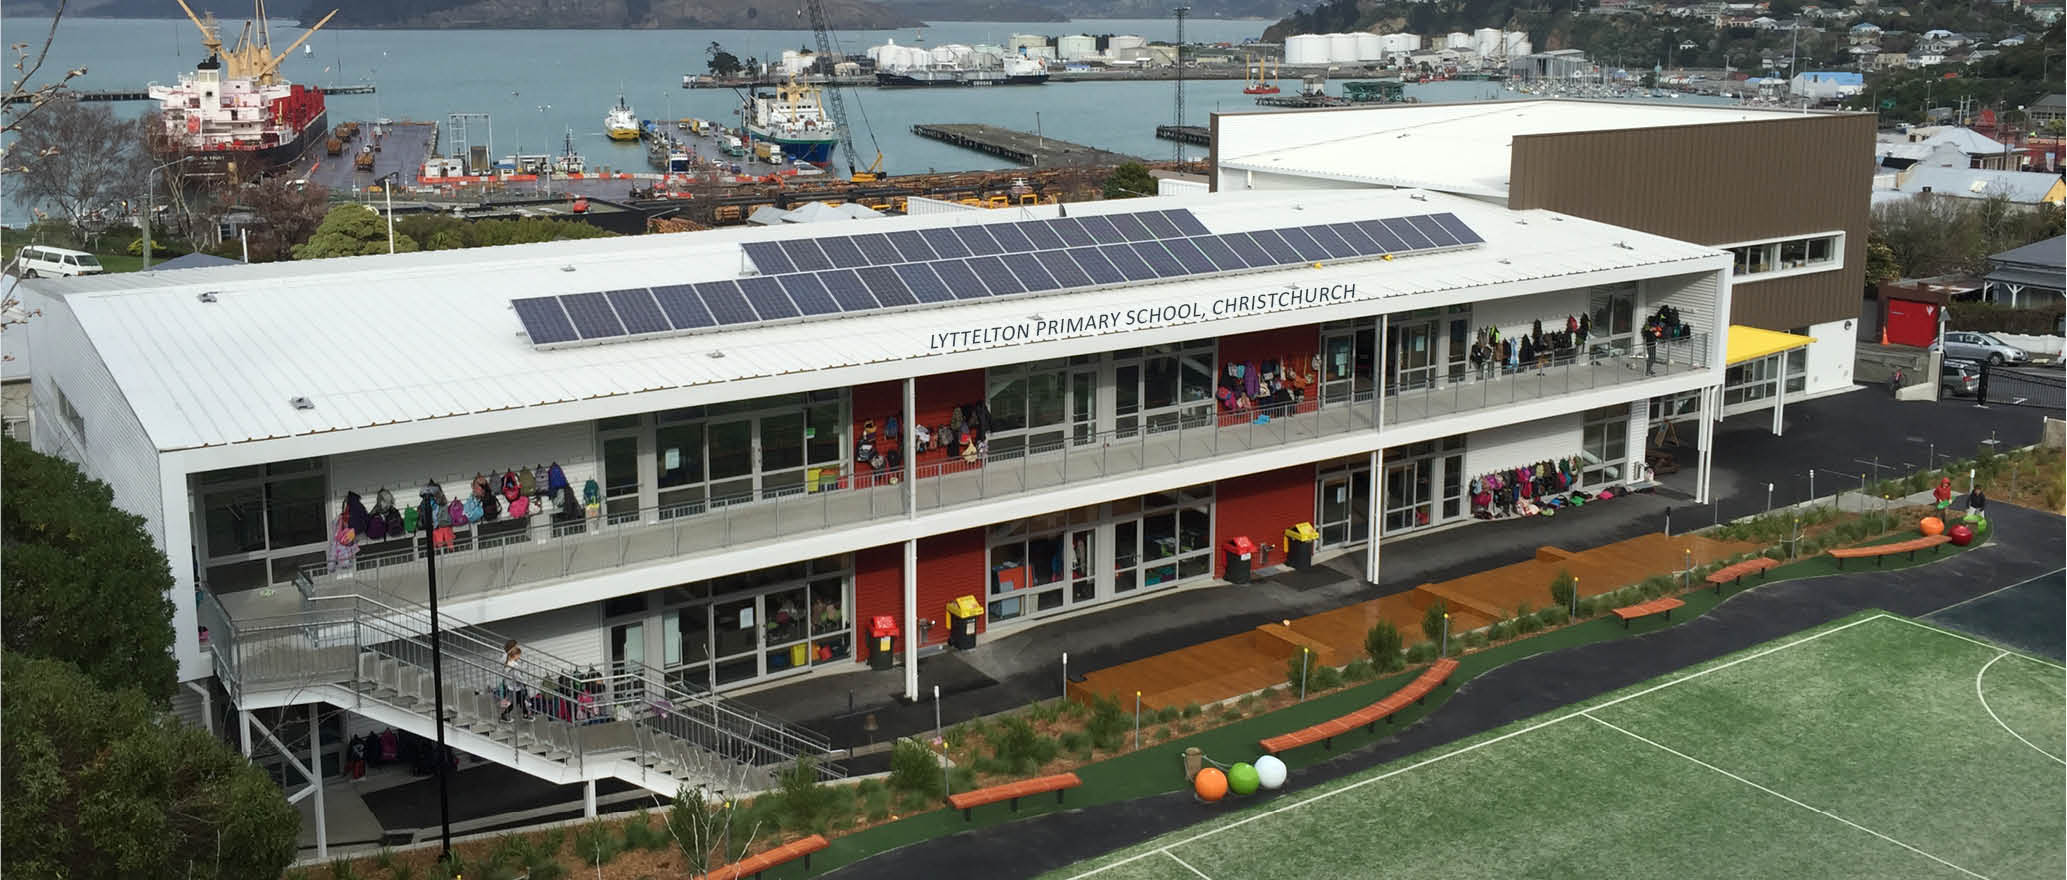 Lyttelton-Primary-School-Christchurch